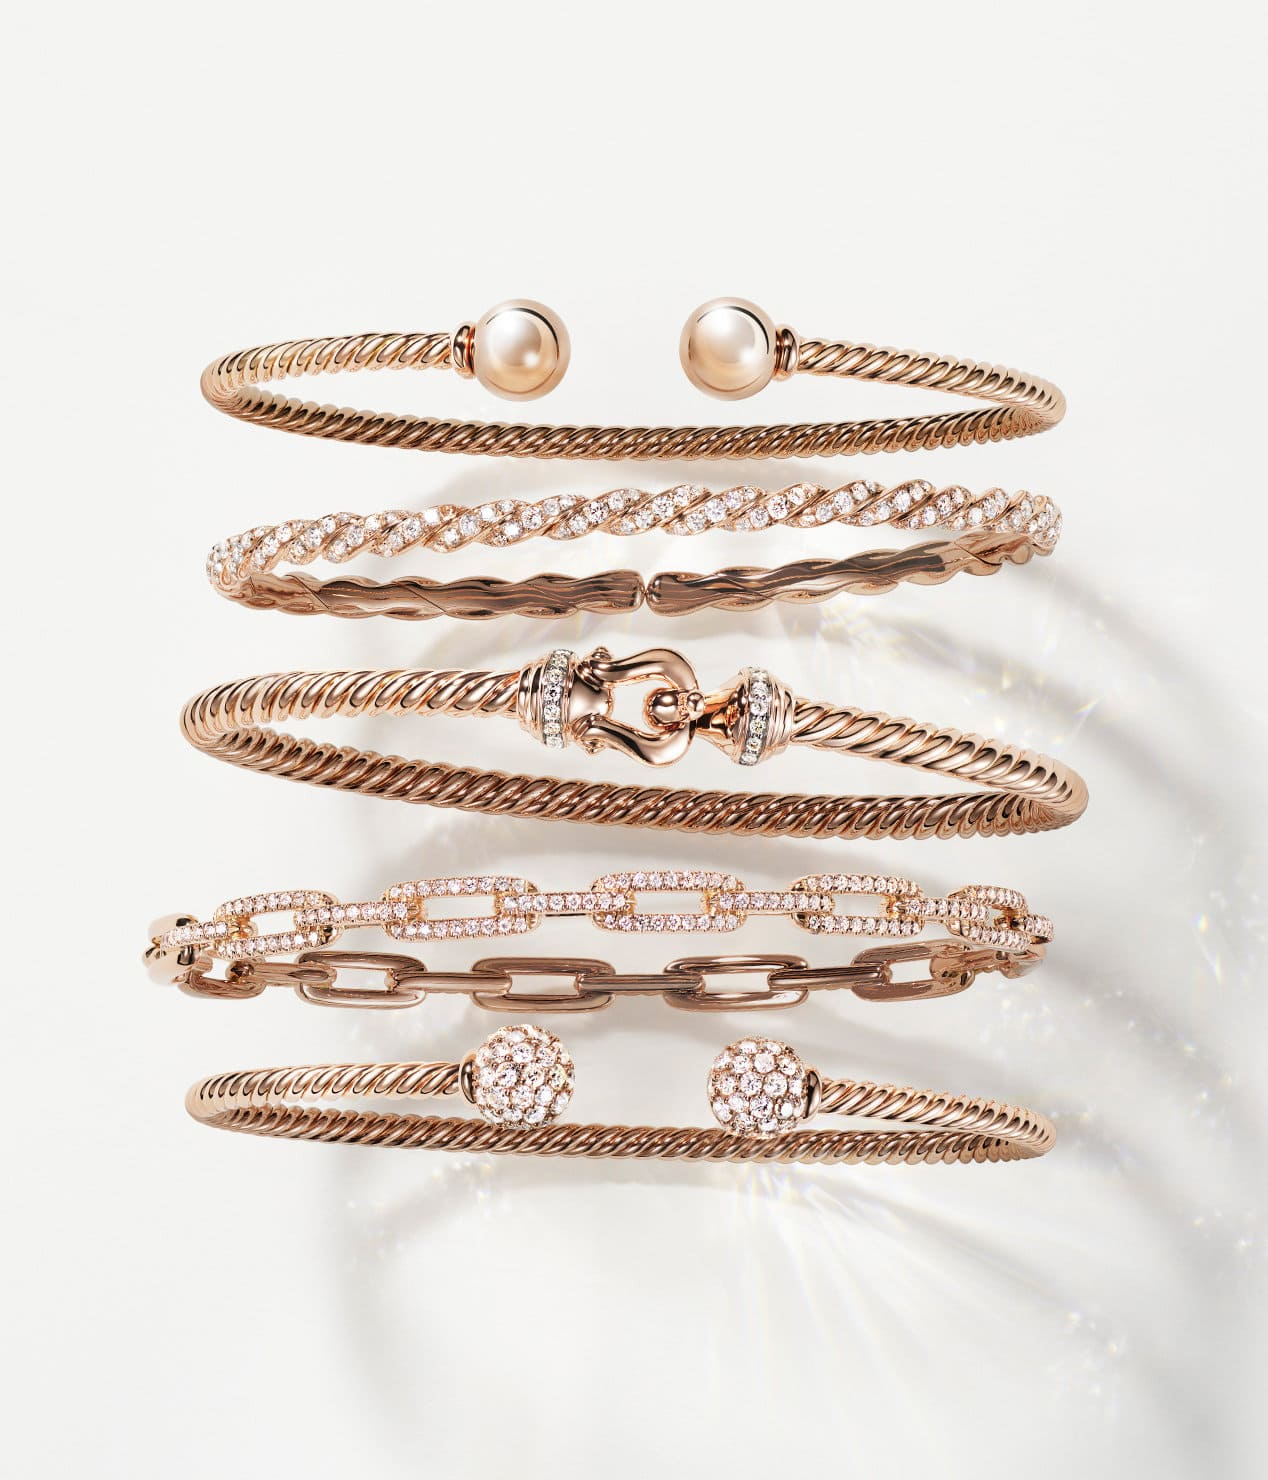 A color photograph shows a vertical row of five David Yurman bracelets on a white background. The women's jewelry is crafted from 18K yellow gold with pavé diamonds. Four of the bracelets feature Cable, a buckle motif or ball-shaped ends, while one bracelet is a chain-link design.